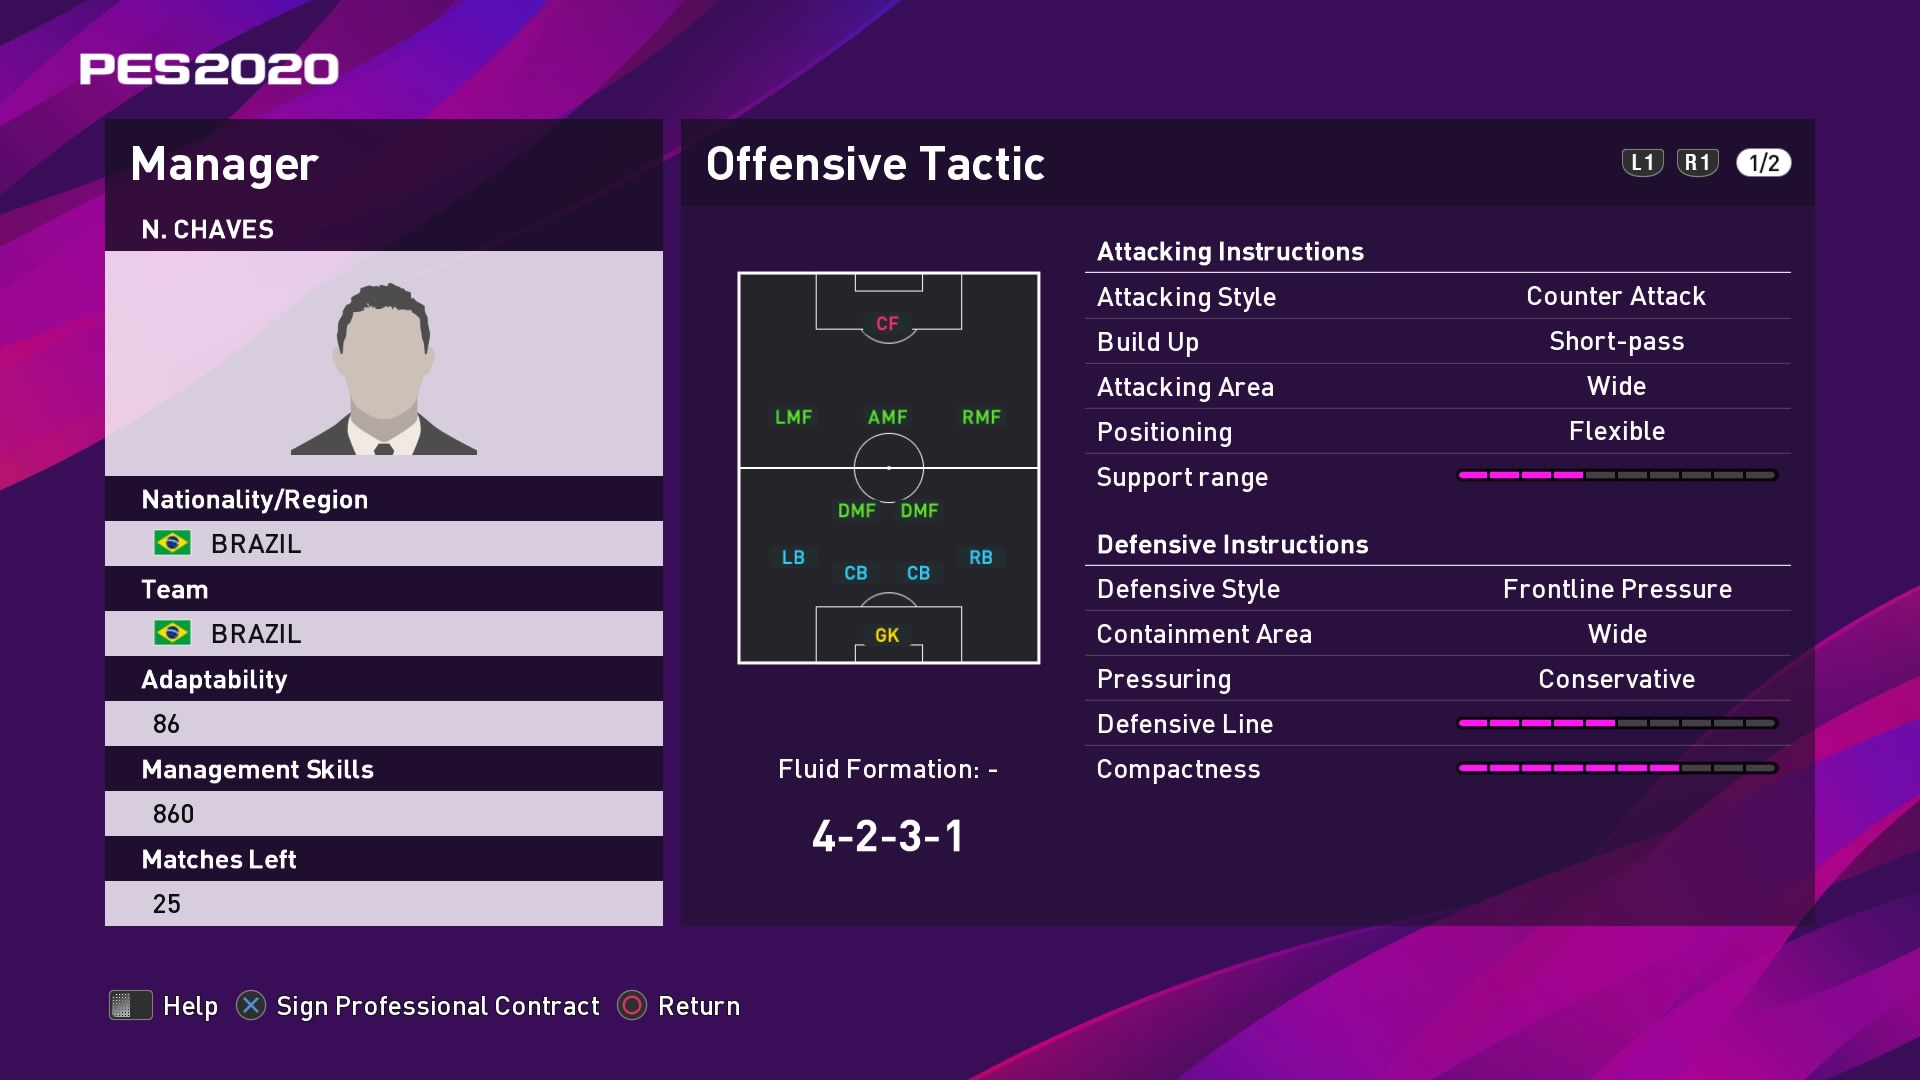 N. Chaves (Tite) Offensive Tactic in PES 2020 myClub